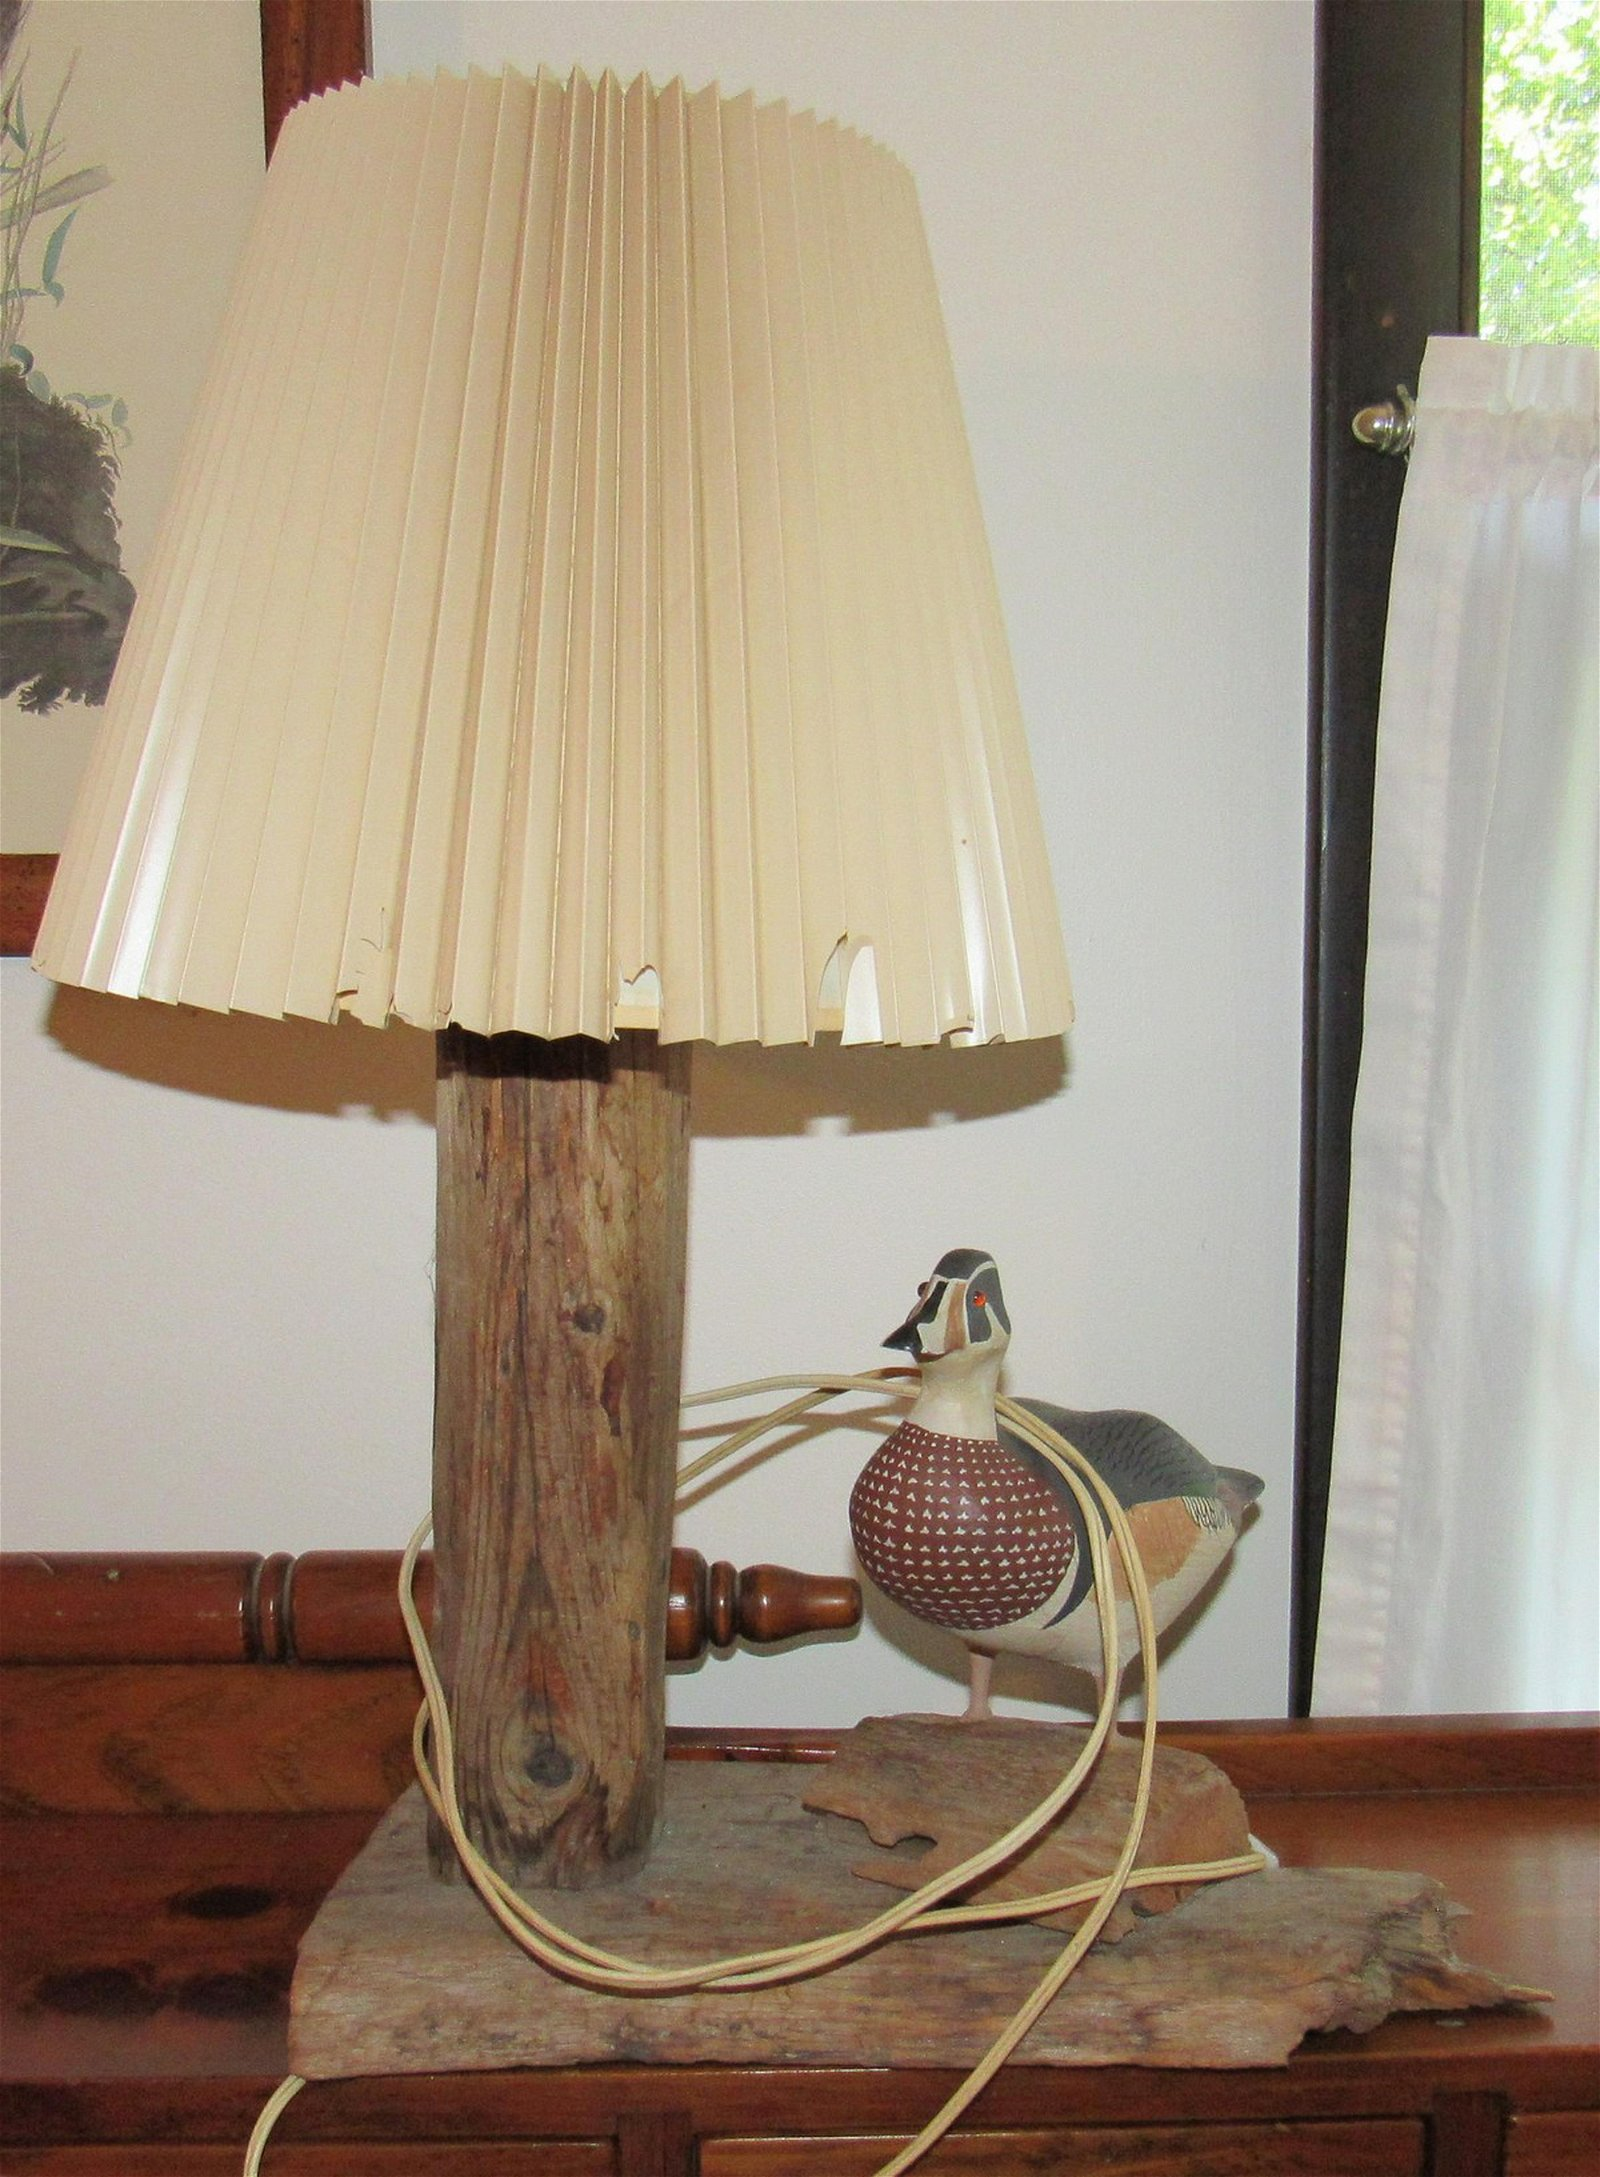 Wooden Carved Duck Lamp